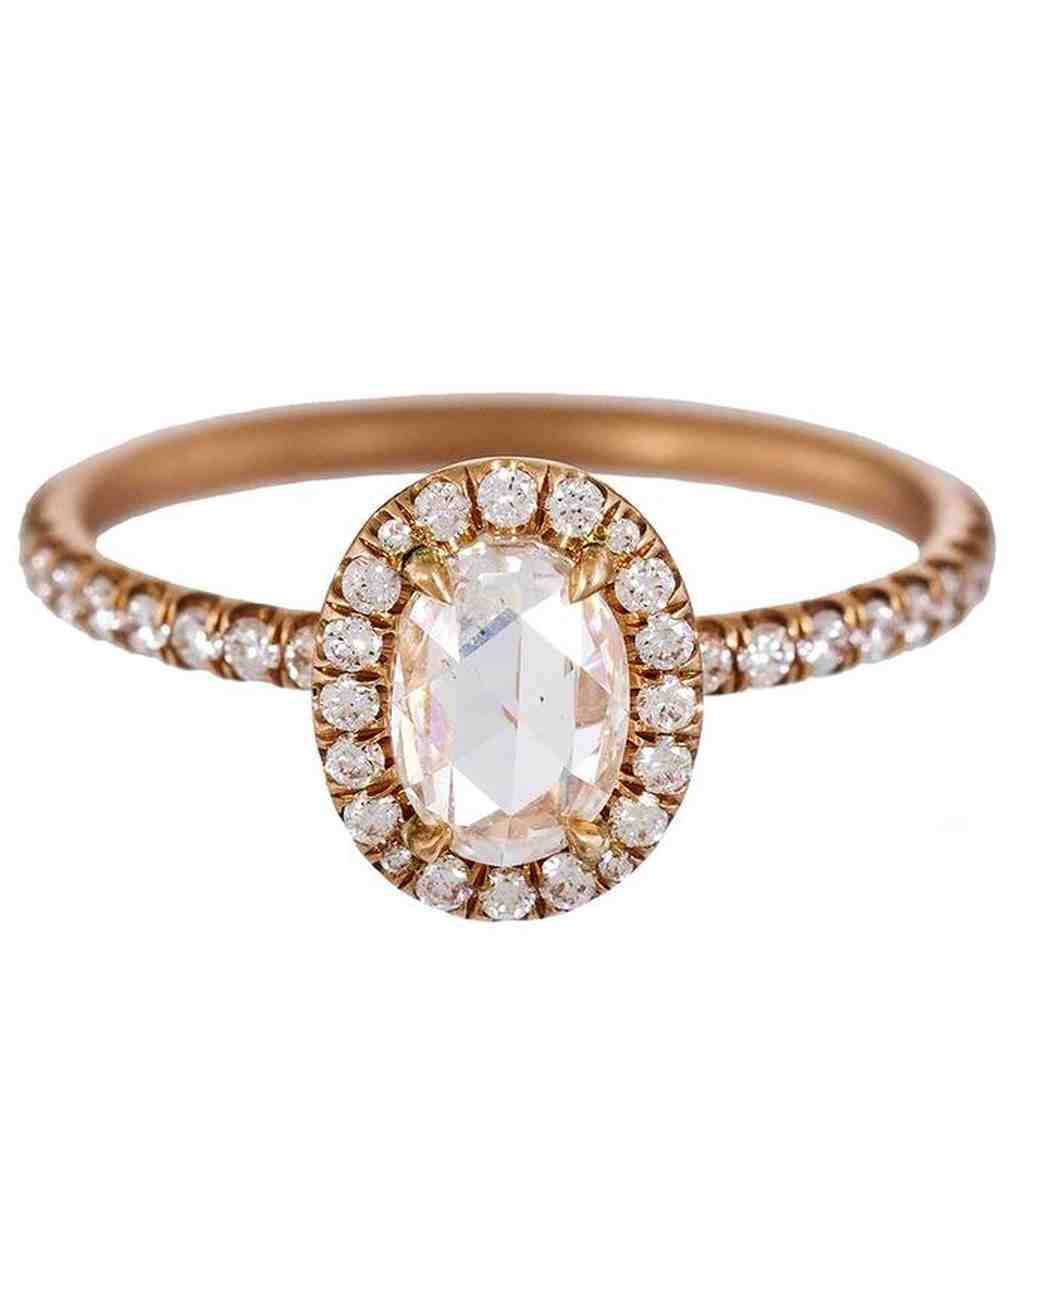 Engagement Rings : Stunning Engagement Rings Without Stones Simple Within Engagement Ring Settings Without Stones (View 4 of 15)